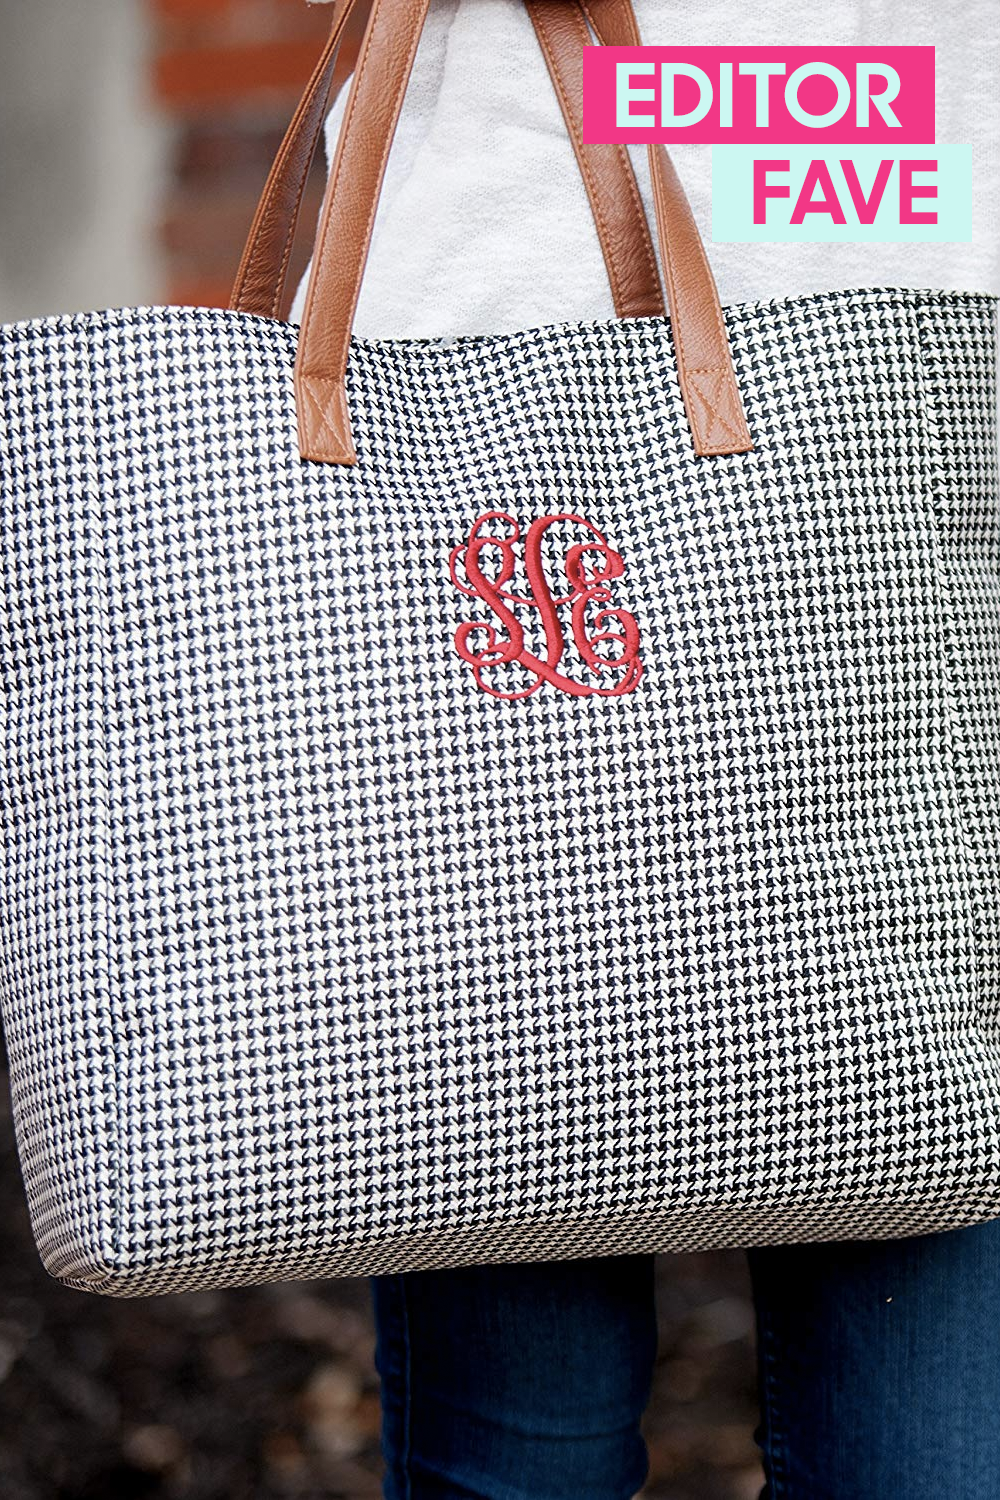 0e645eed6520 20 Best Personalized Gift Ideas - Monogrammed Gifts for Her and Him